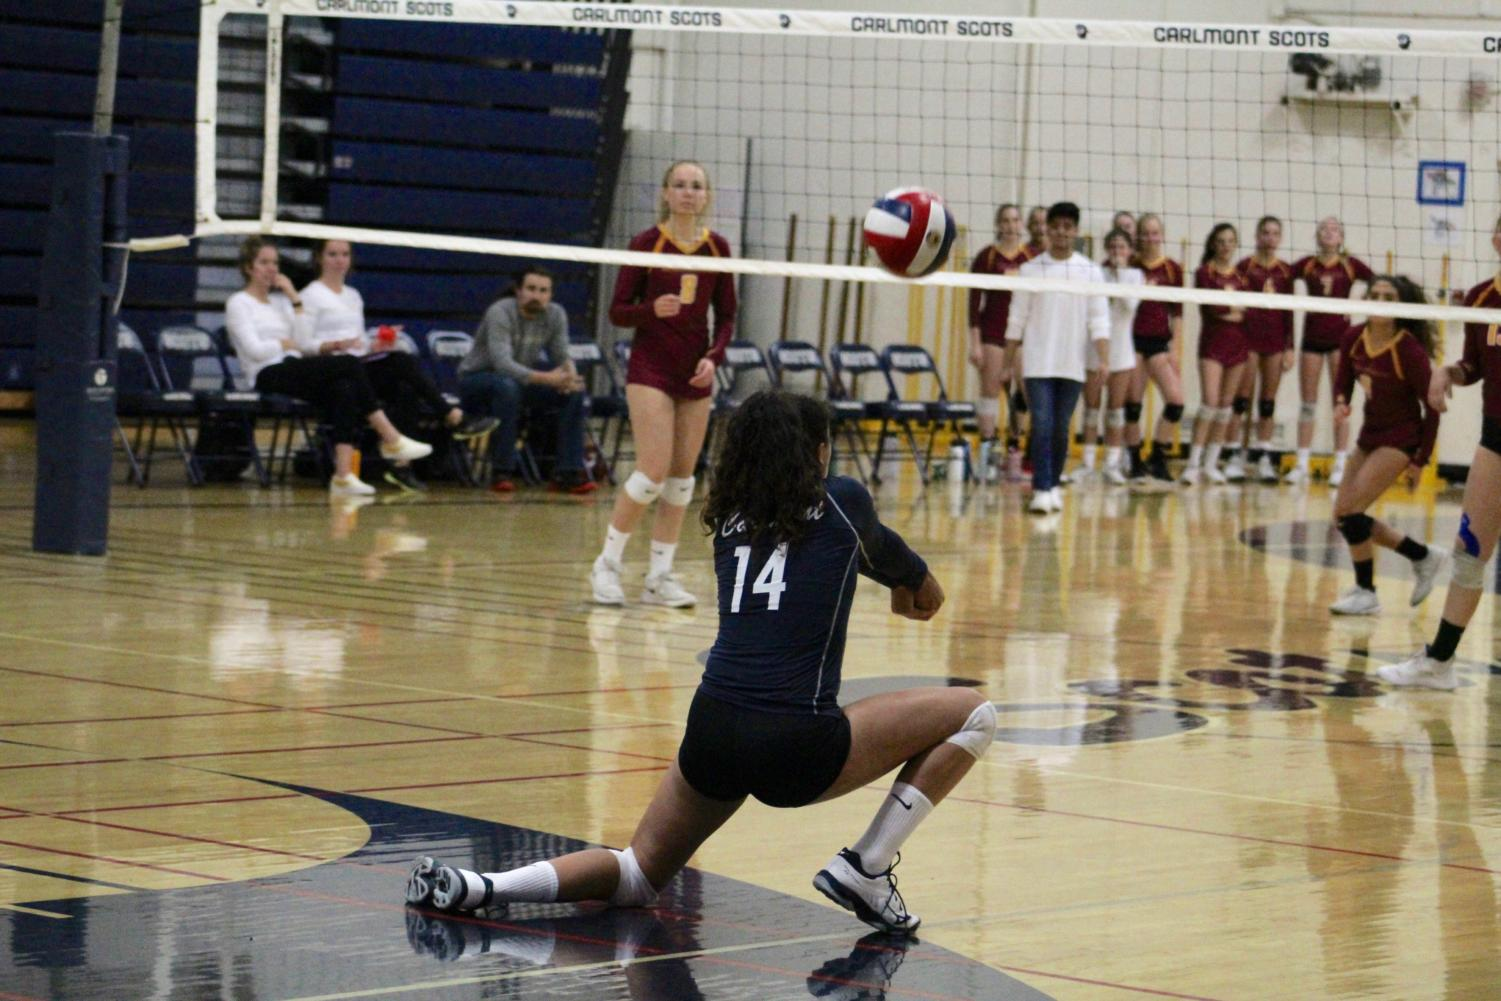 Freshman Curly Raddavero gets low in order to reach a pass from the opposing team.